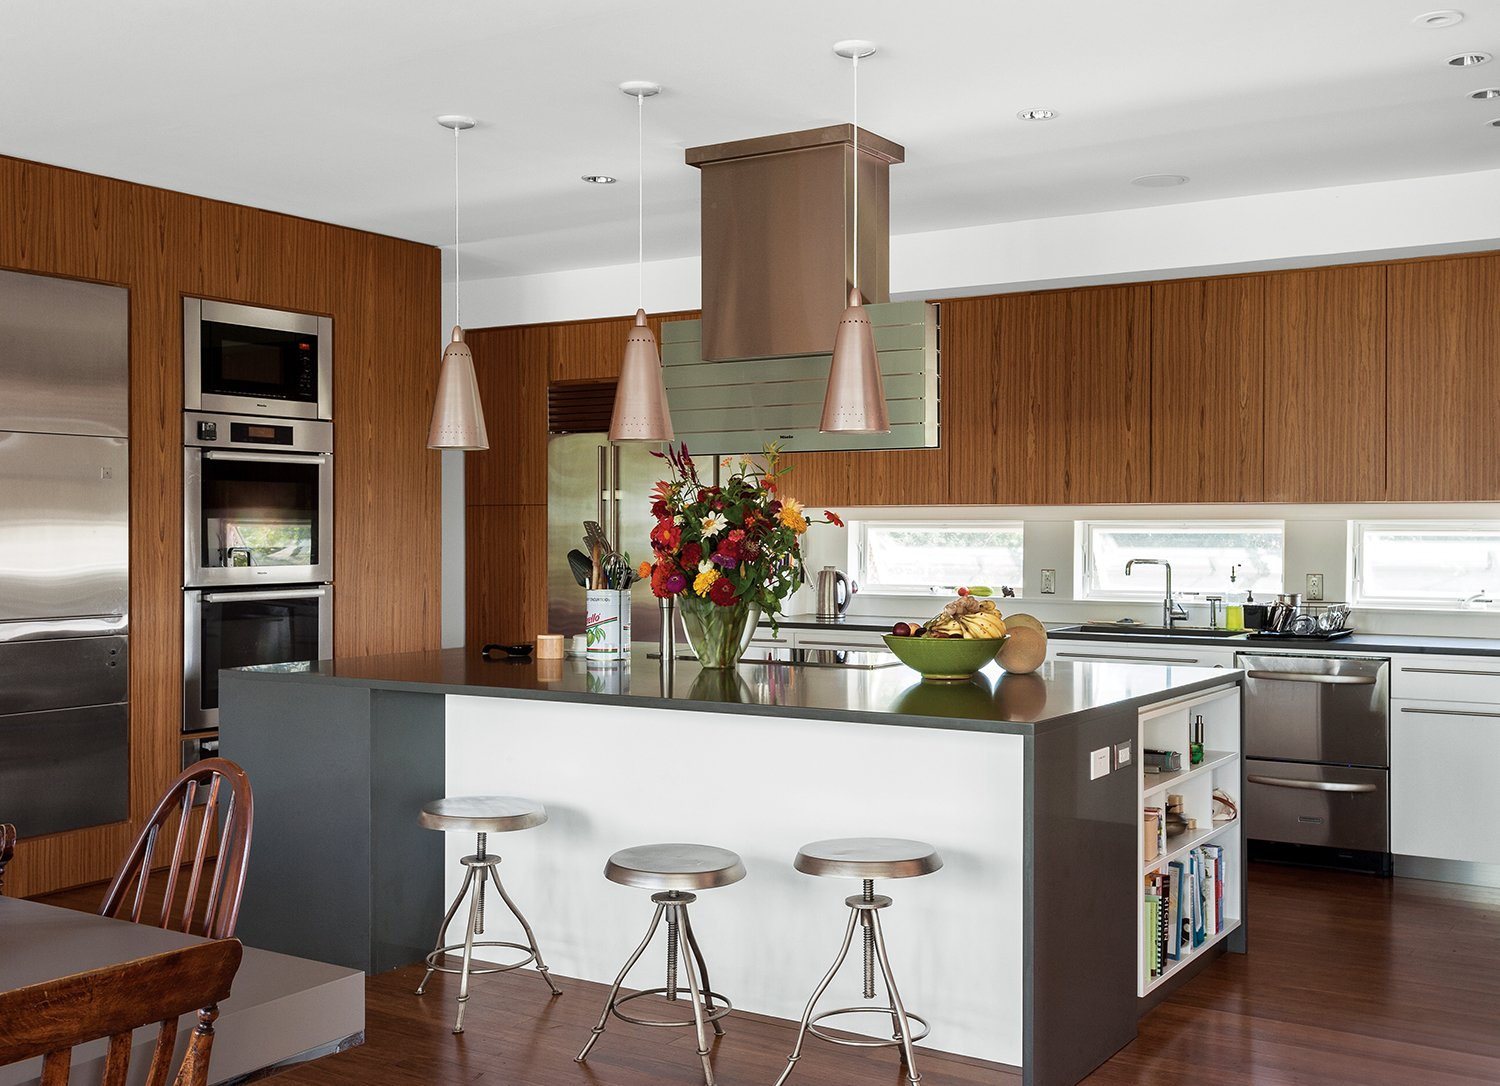 In the kitchen, teak-and- thermofoil cabinets and Caesarstone countertops mix with Miele appliances—wall ovens, induction cooktop, hood, and microwave—and a Sub-Zero refrigerator. The kitchen sink and faucet are by Blanco. The owners, who split their time between Fishers Island and Great Britain, found the vintage pendant lamps at Lassco architectural salvage.